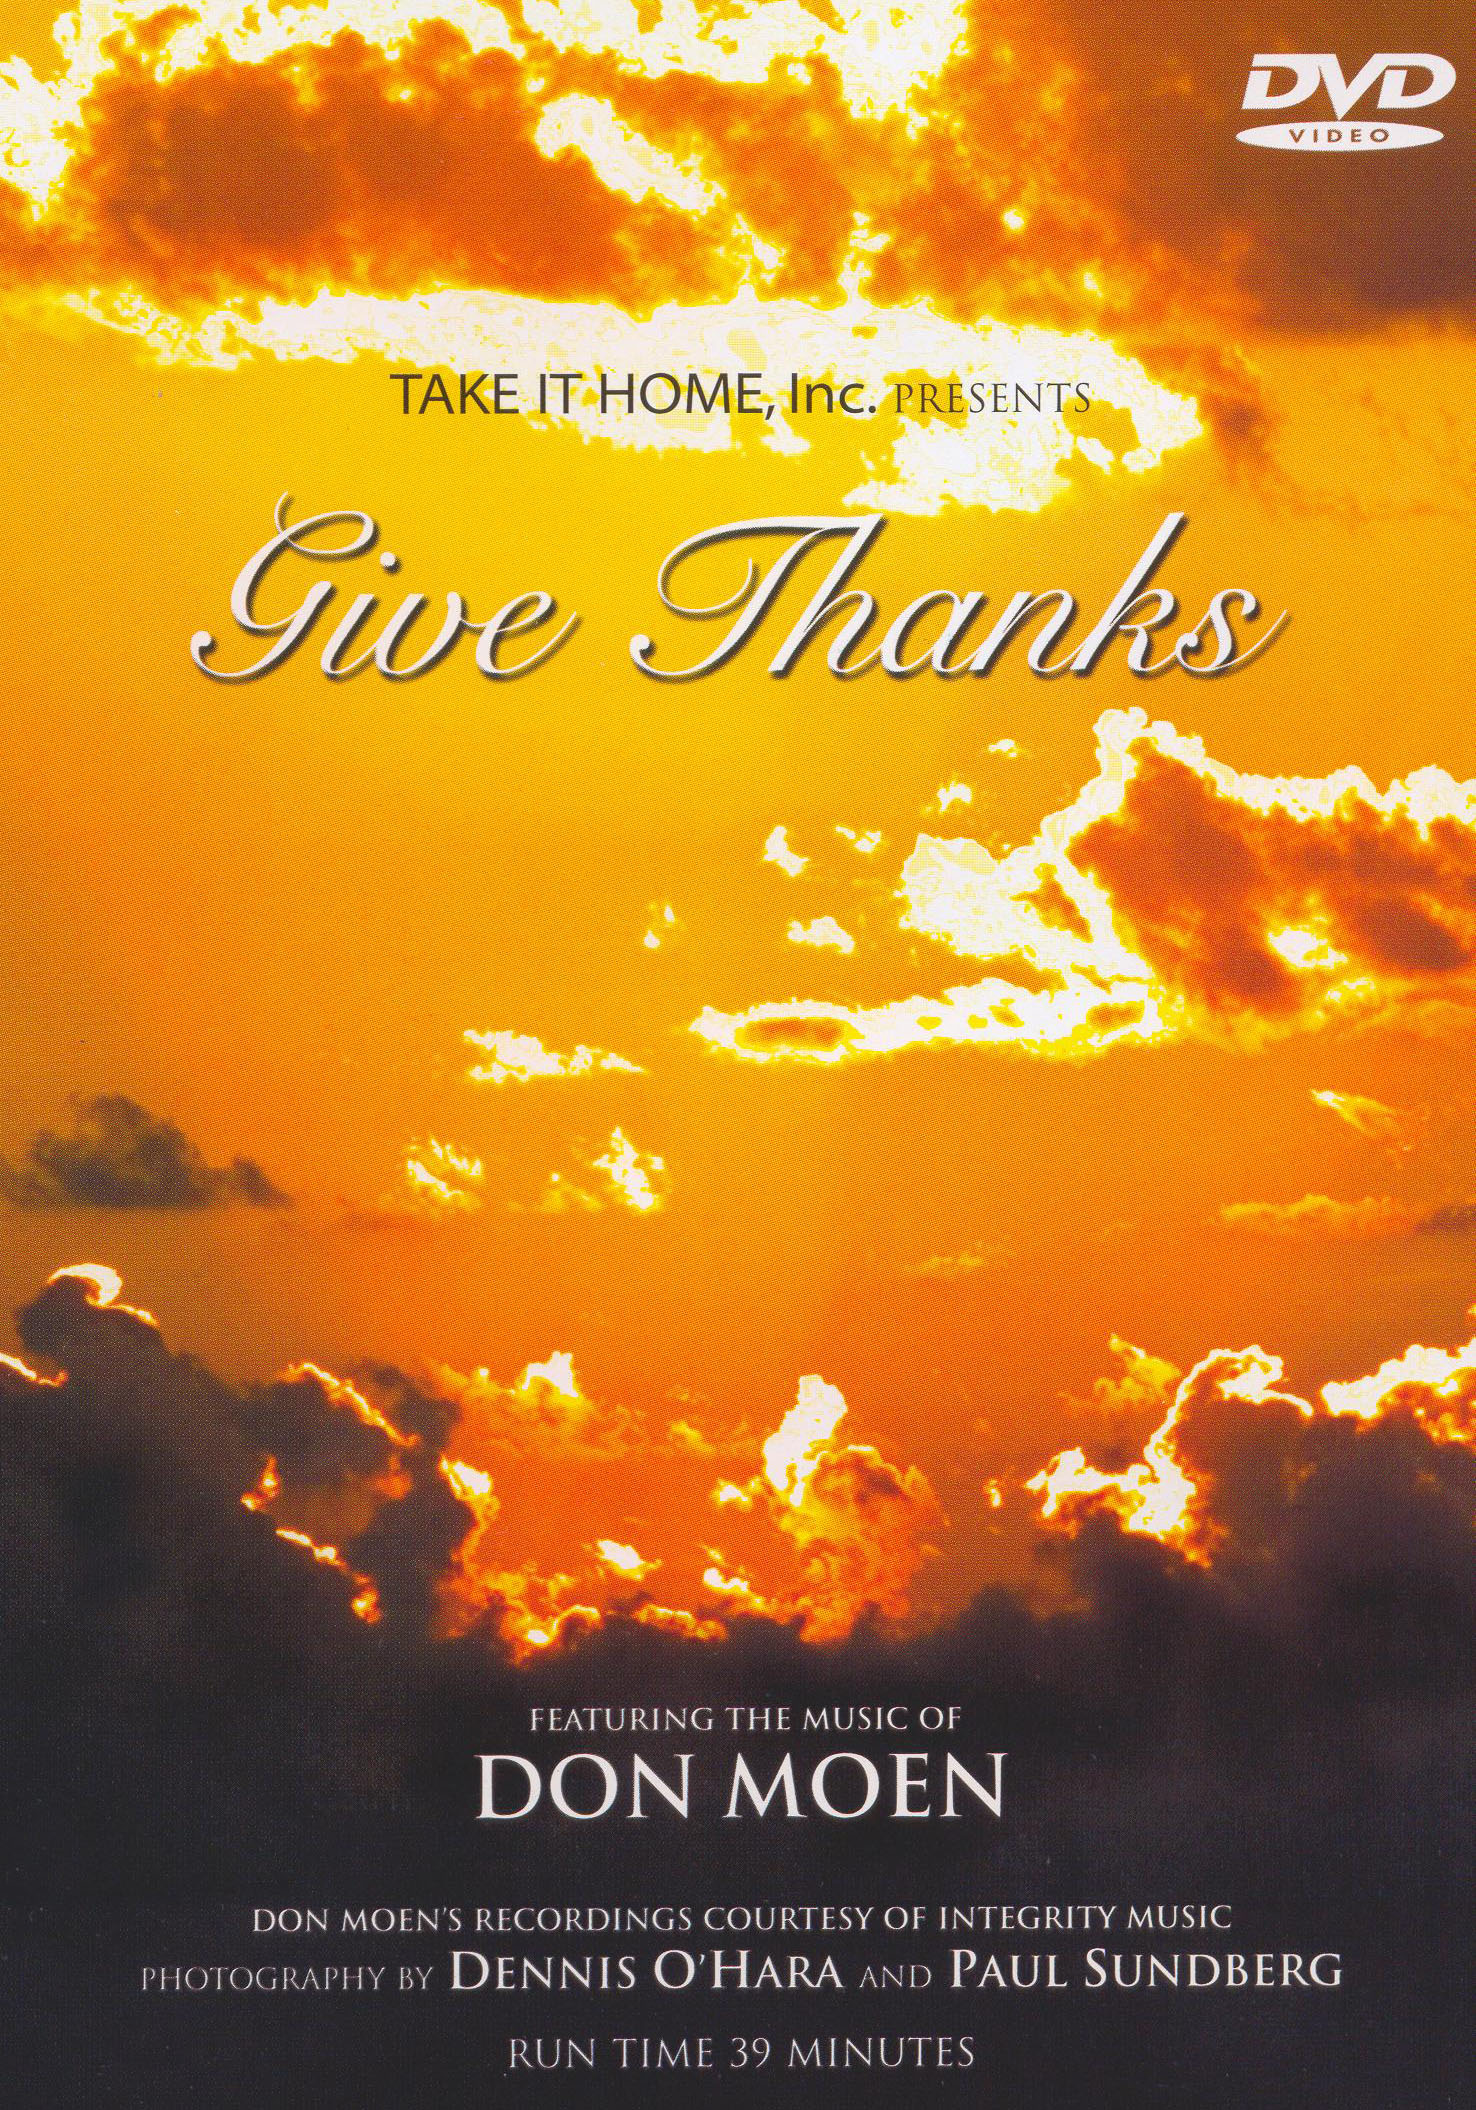 Paul Sundberg/Don Moen/Dennis O'Hara: Give Thanks